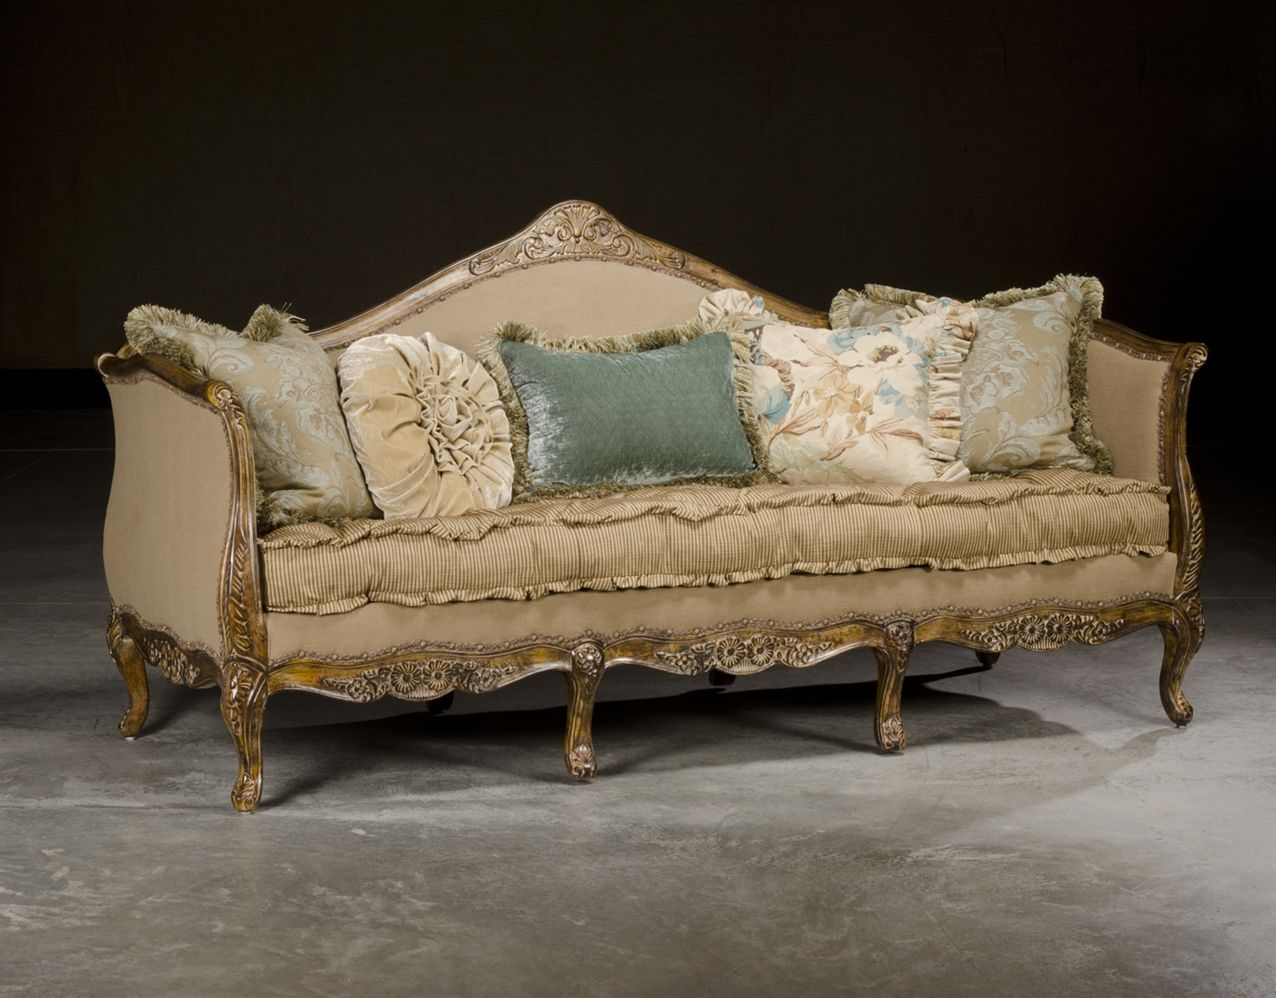 Rustic French Country Furniture Sofa High End Upholstered